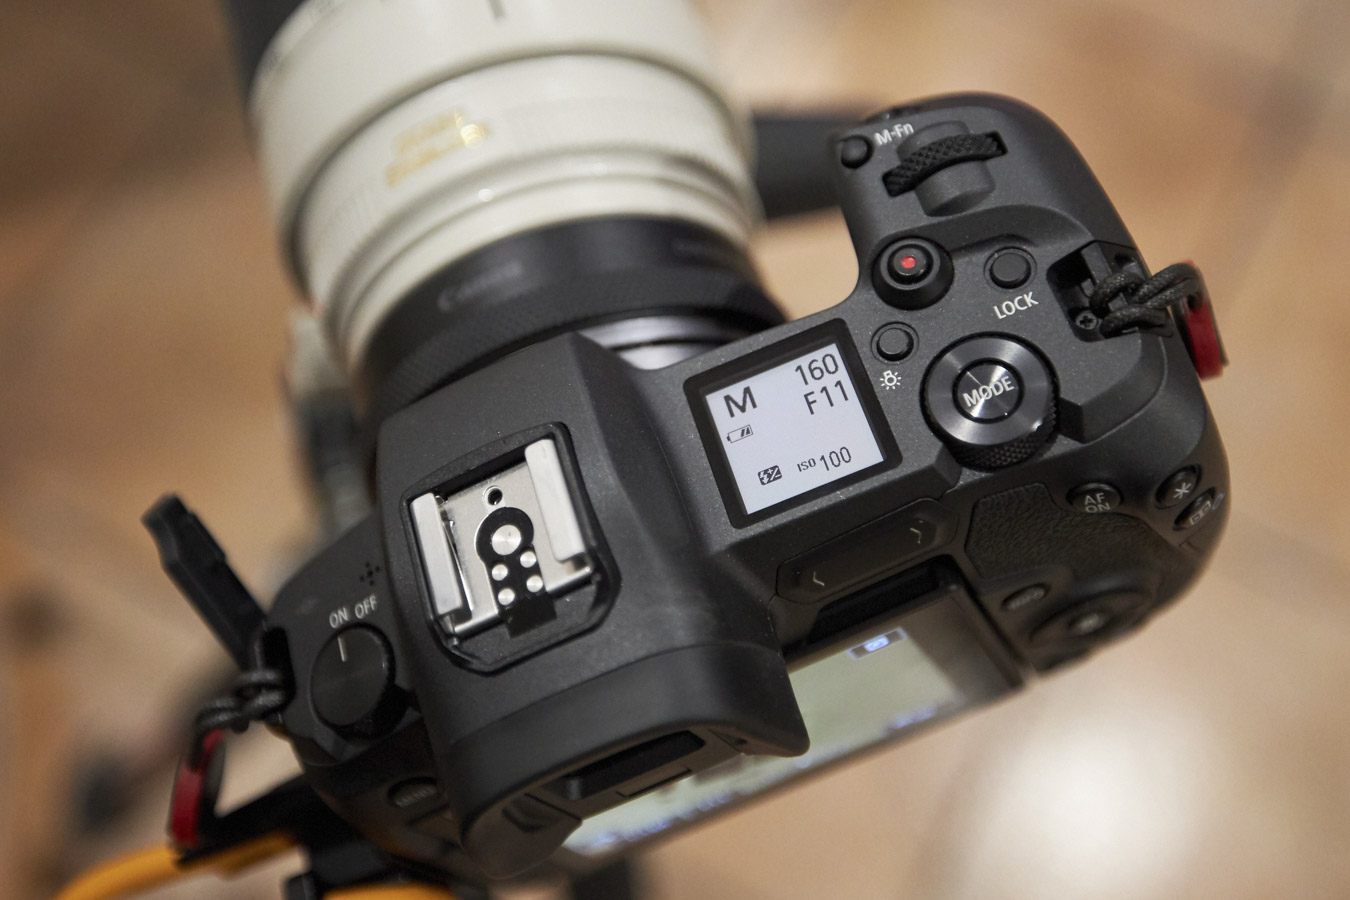 photo-of-the-top-of-a-canon-camera-demonstrating-settings